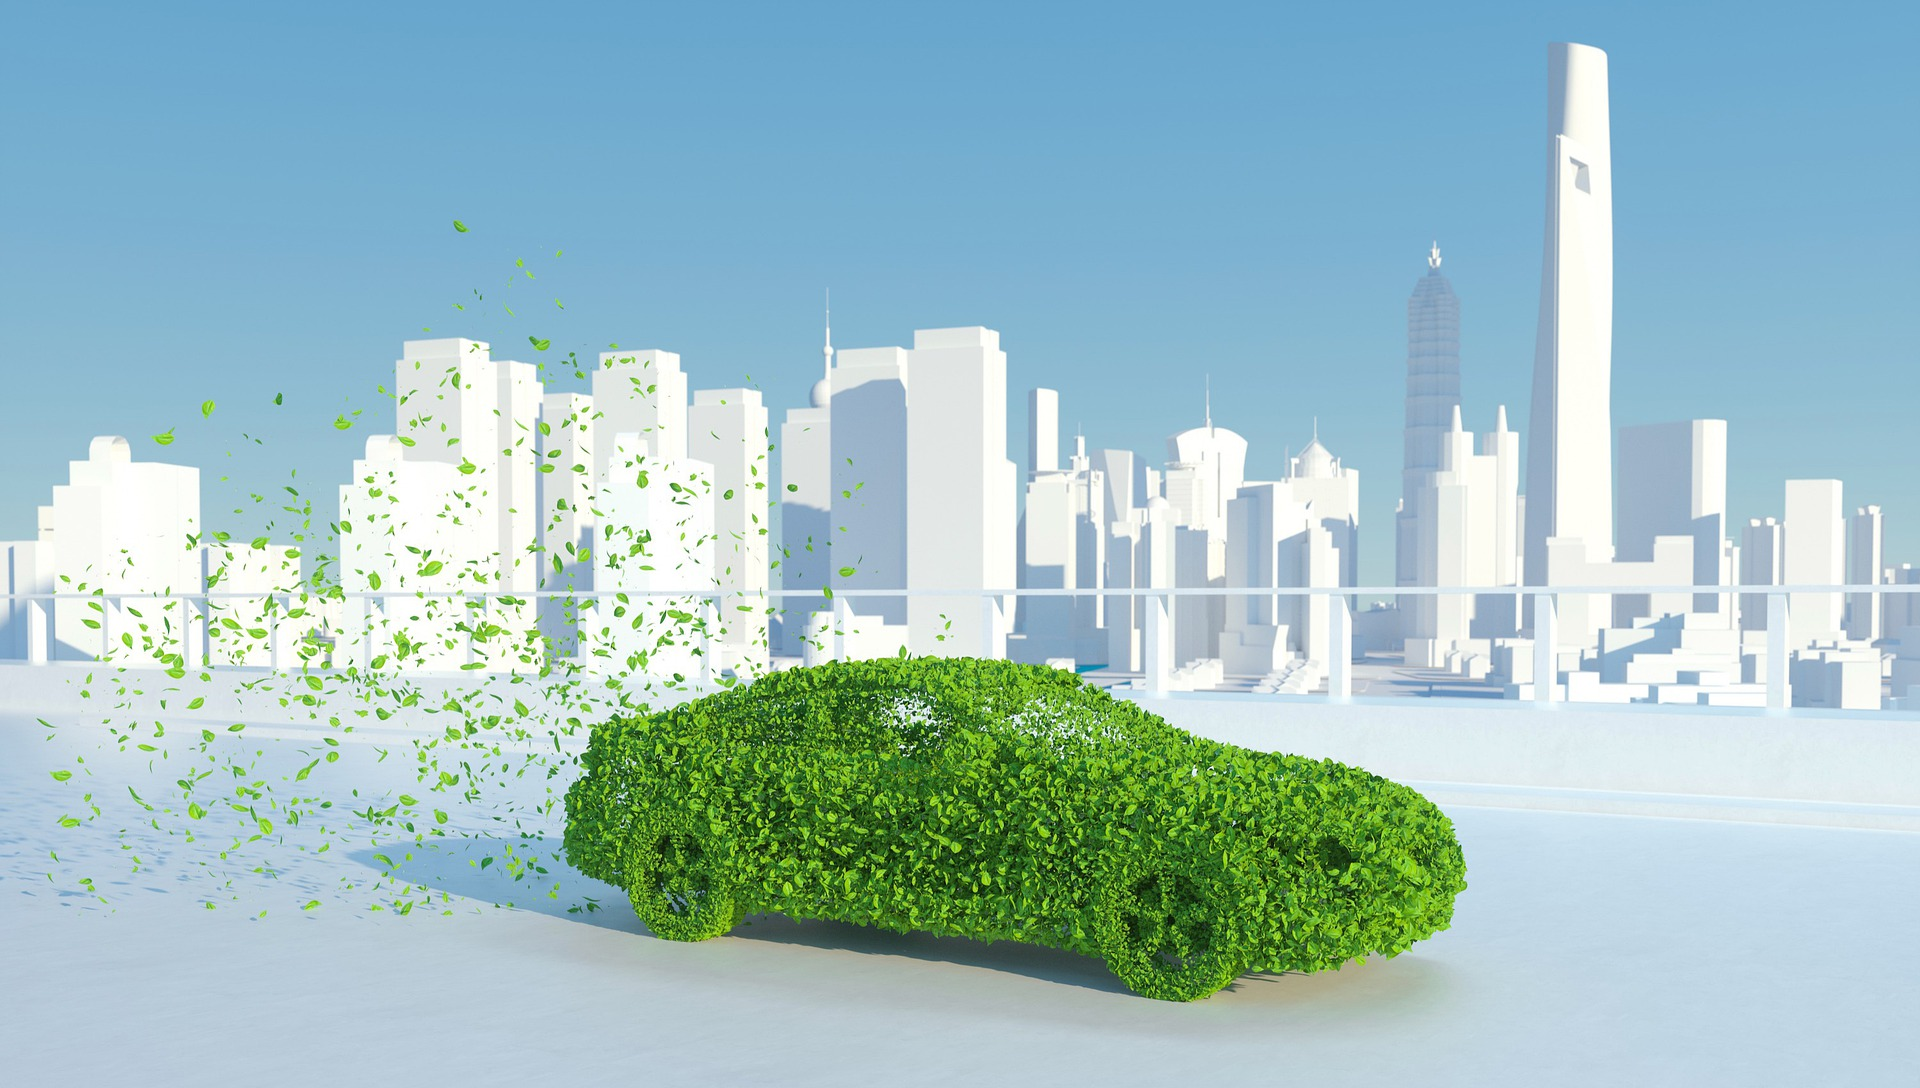 Know more about Sustainable Mobility in our 25th SRM Talks